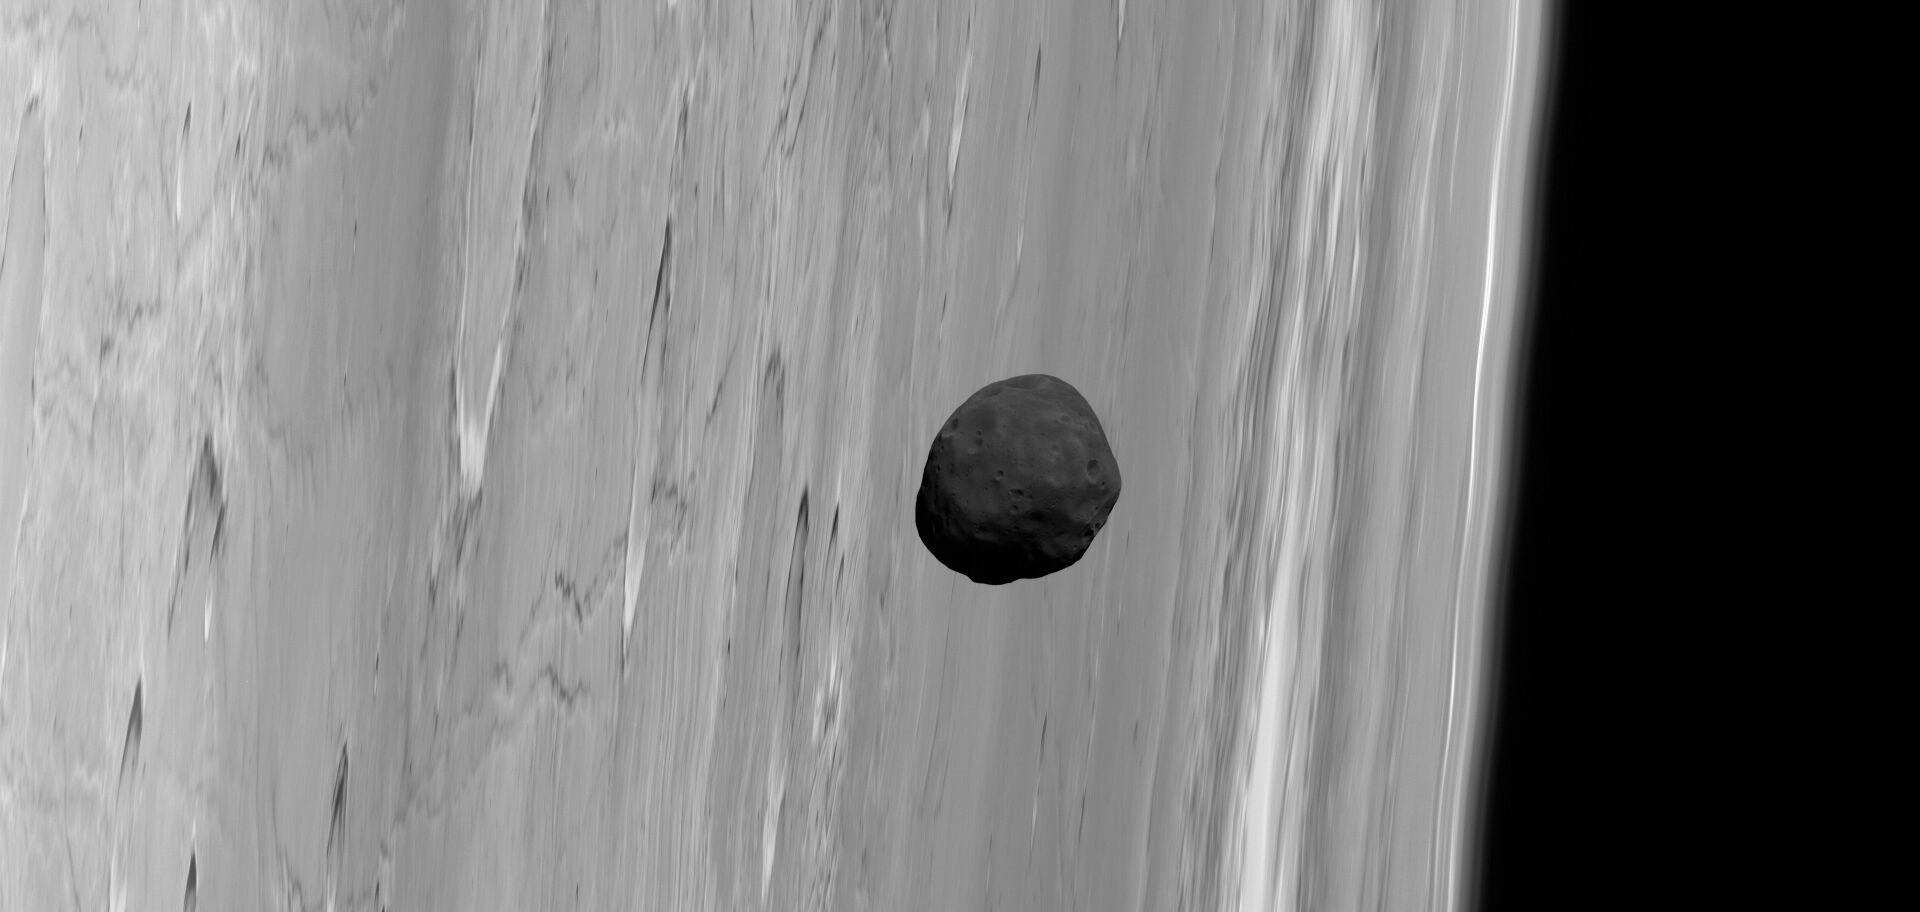 Martian Moon Phobos May Have Formed From Impact With Home Planet